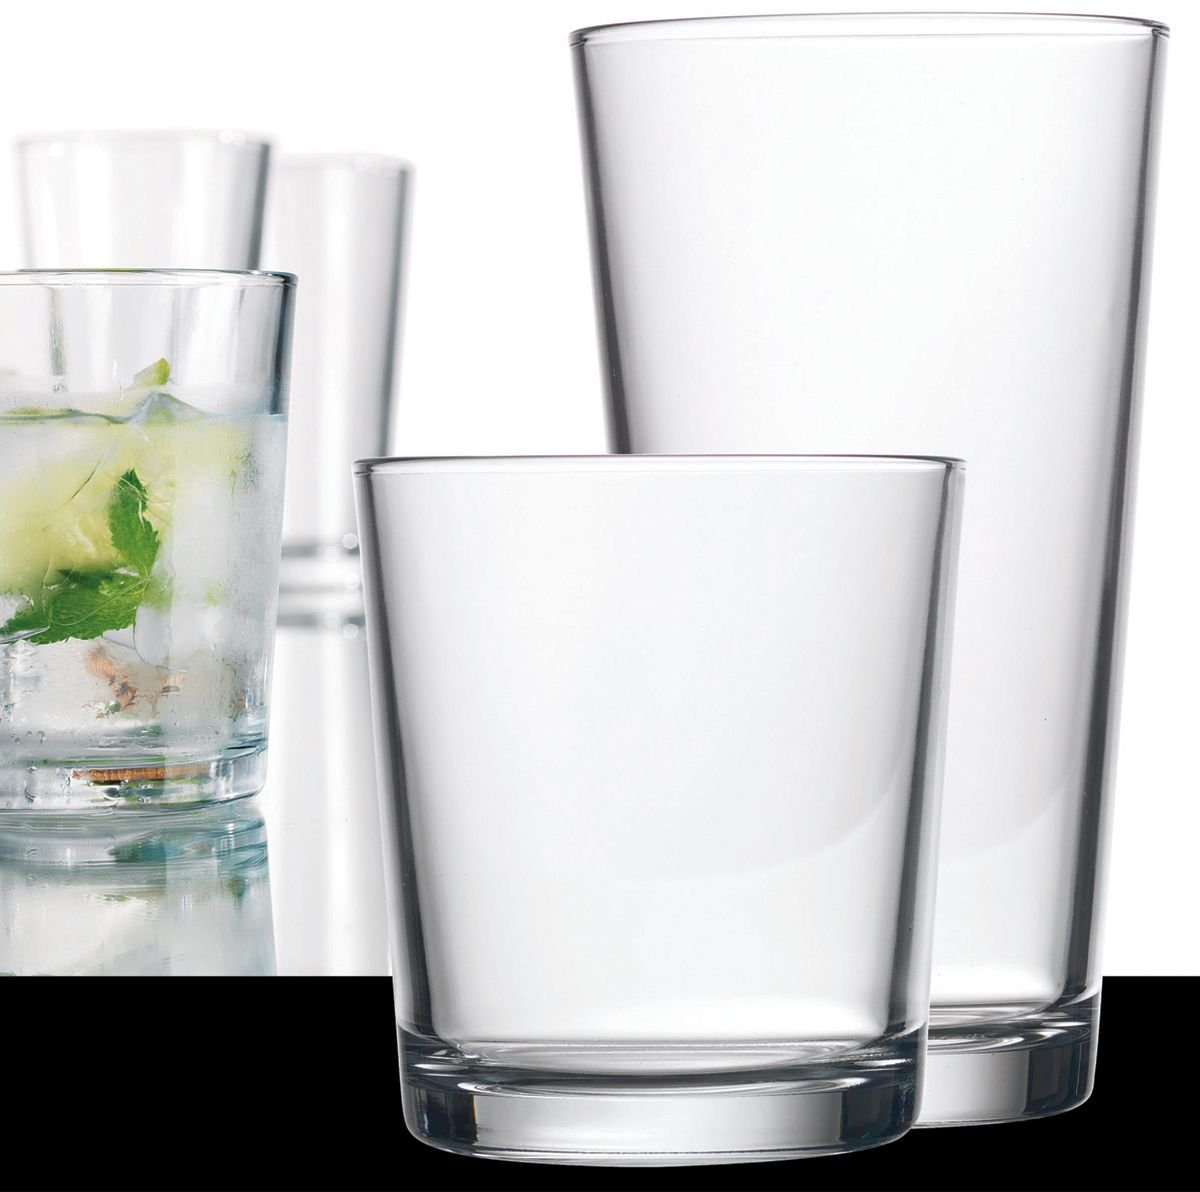 Glassware Drinking Glasses Set Of 16, Durable Heave Base Glass Cups, 8 Highball Glasses and 8 Rocks Glasses- Glassware Set for Water, Juice, Beer, Wine, and Cocktails